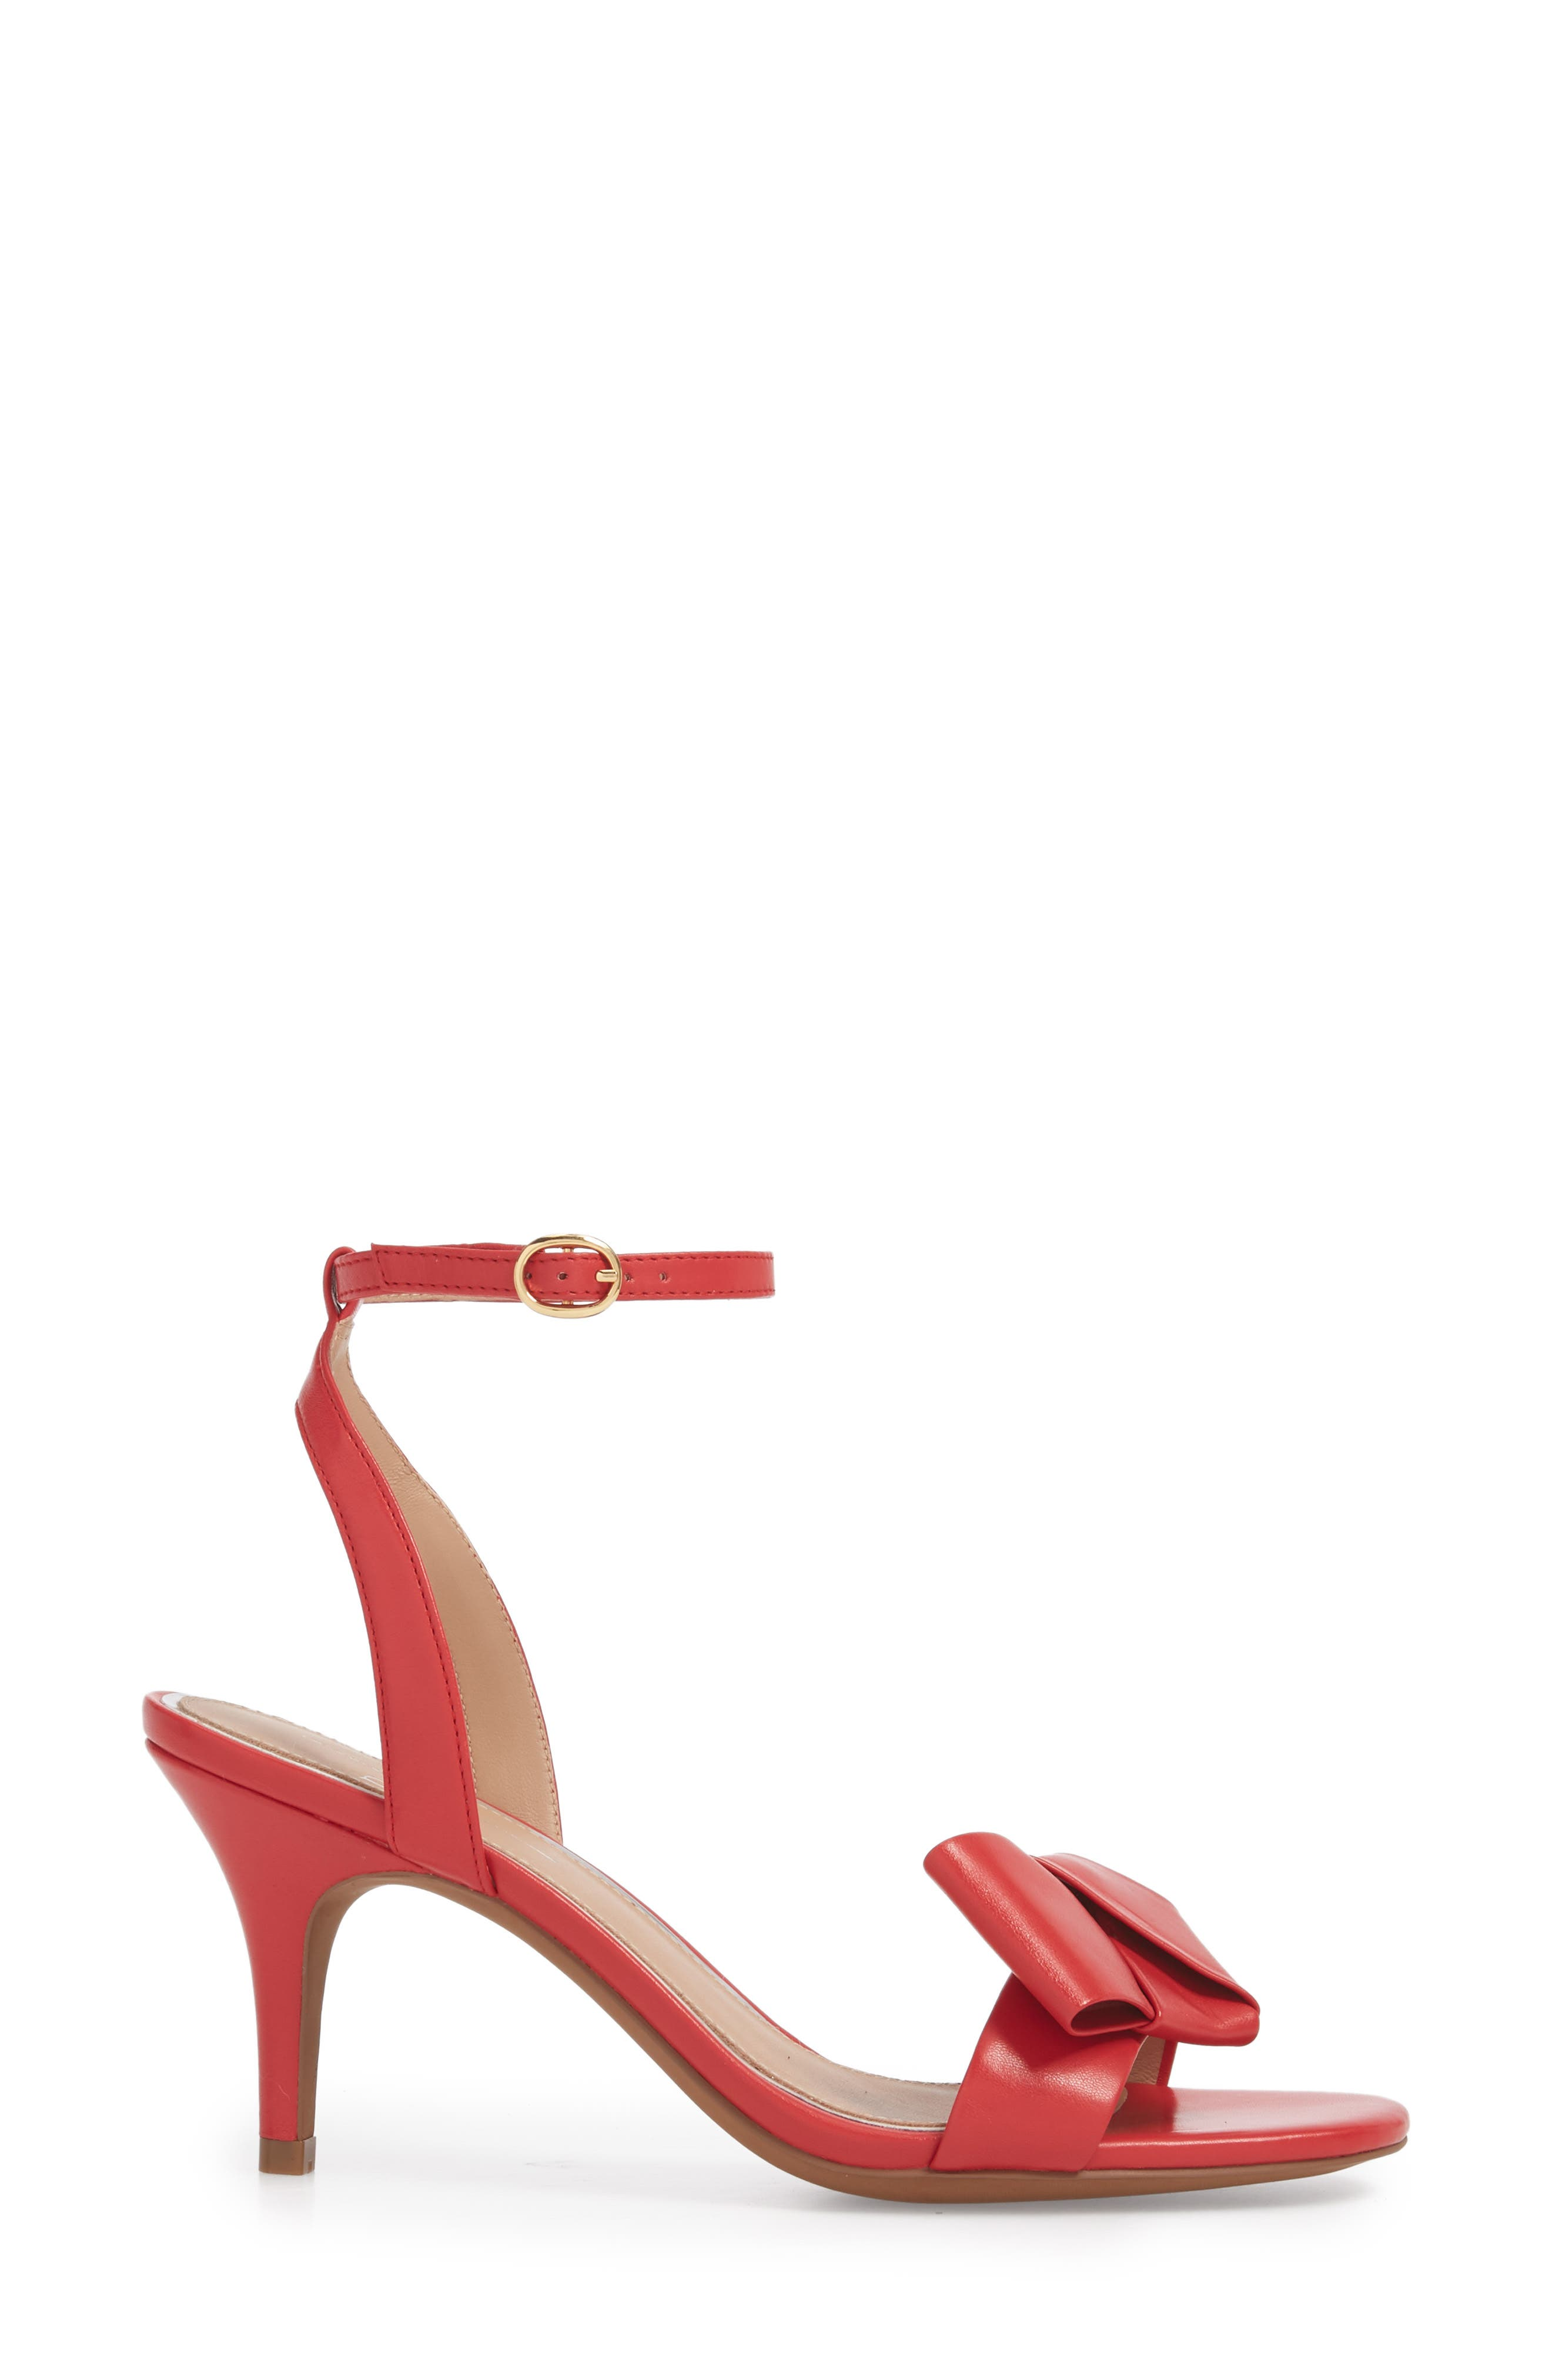 Haven Ankle Strap Sandal,                             Alternate thumbnail 3, color,                             Red Leather